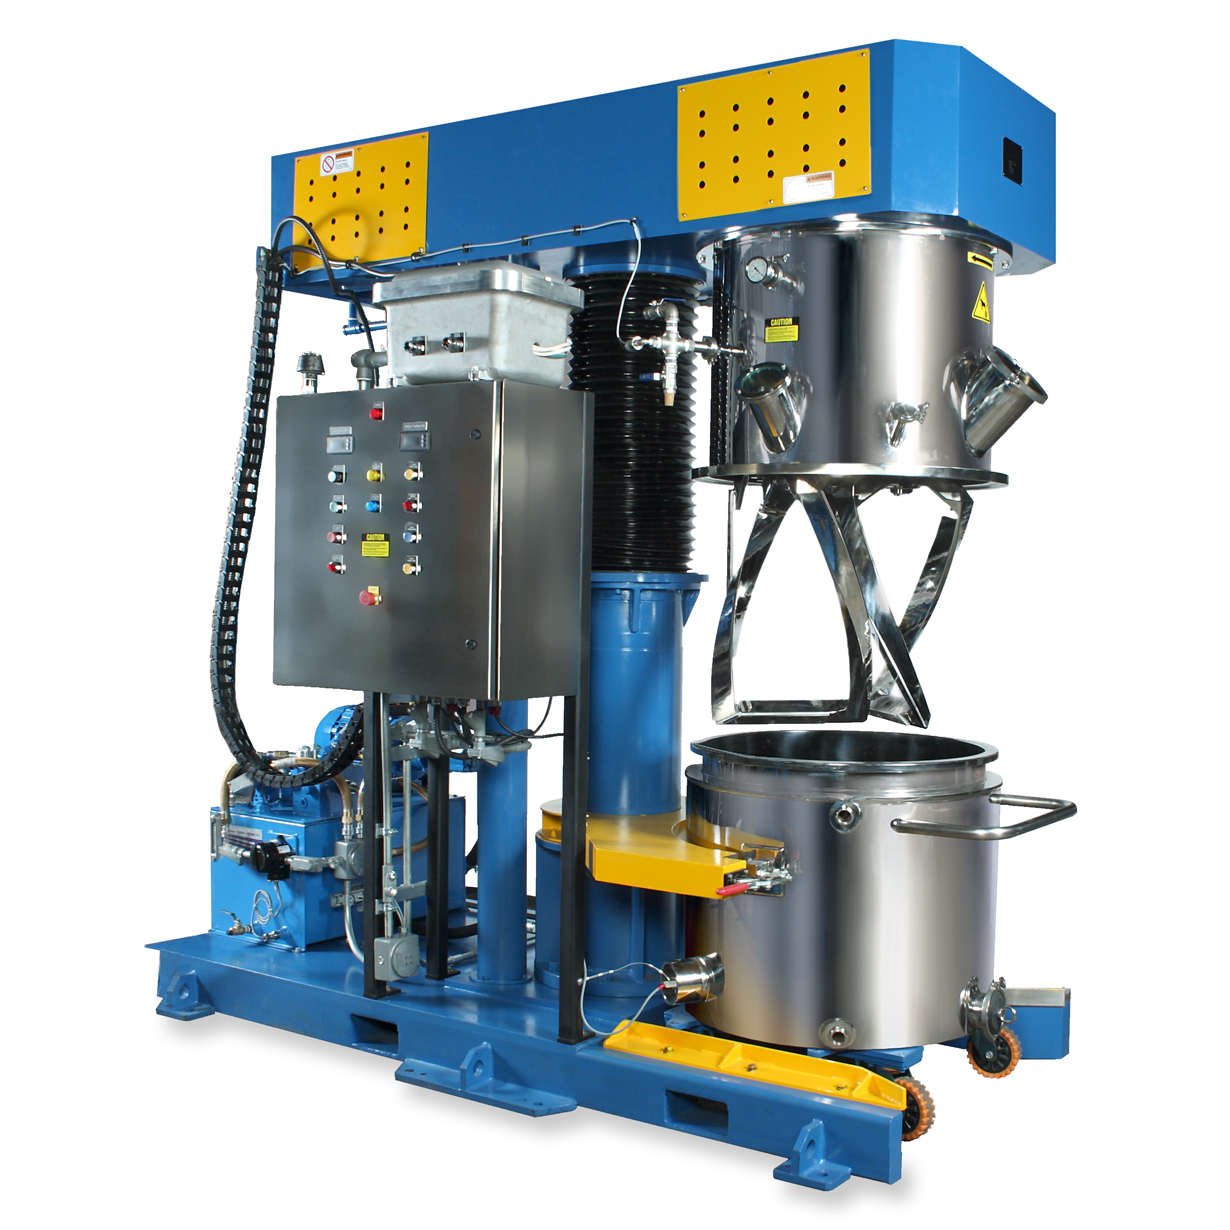 Get A Kneader Mixer From Jaygo Inc